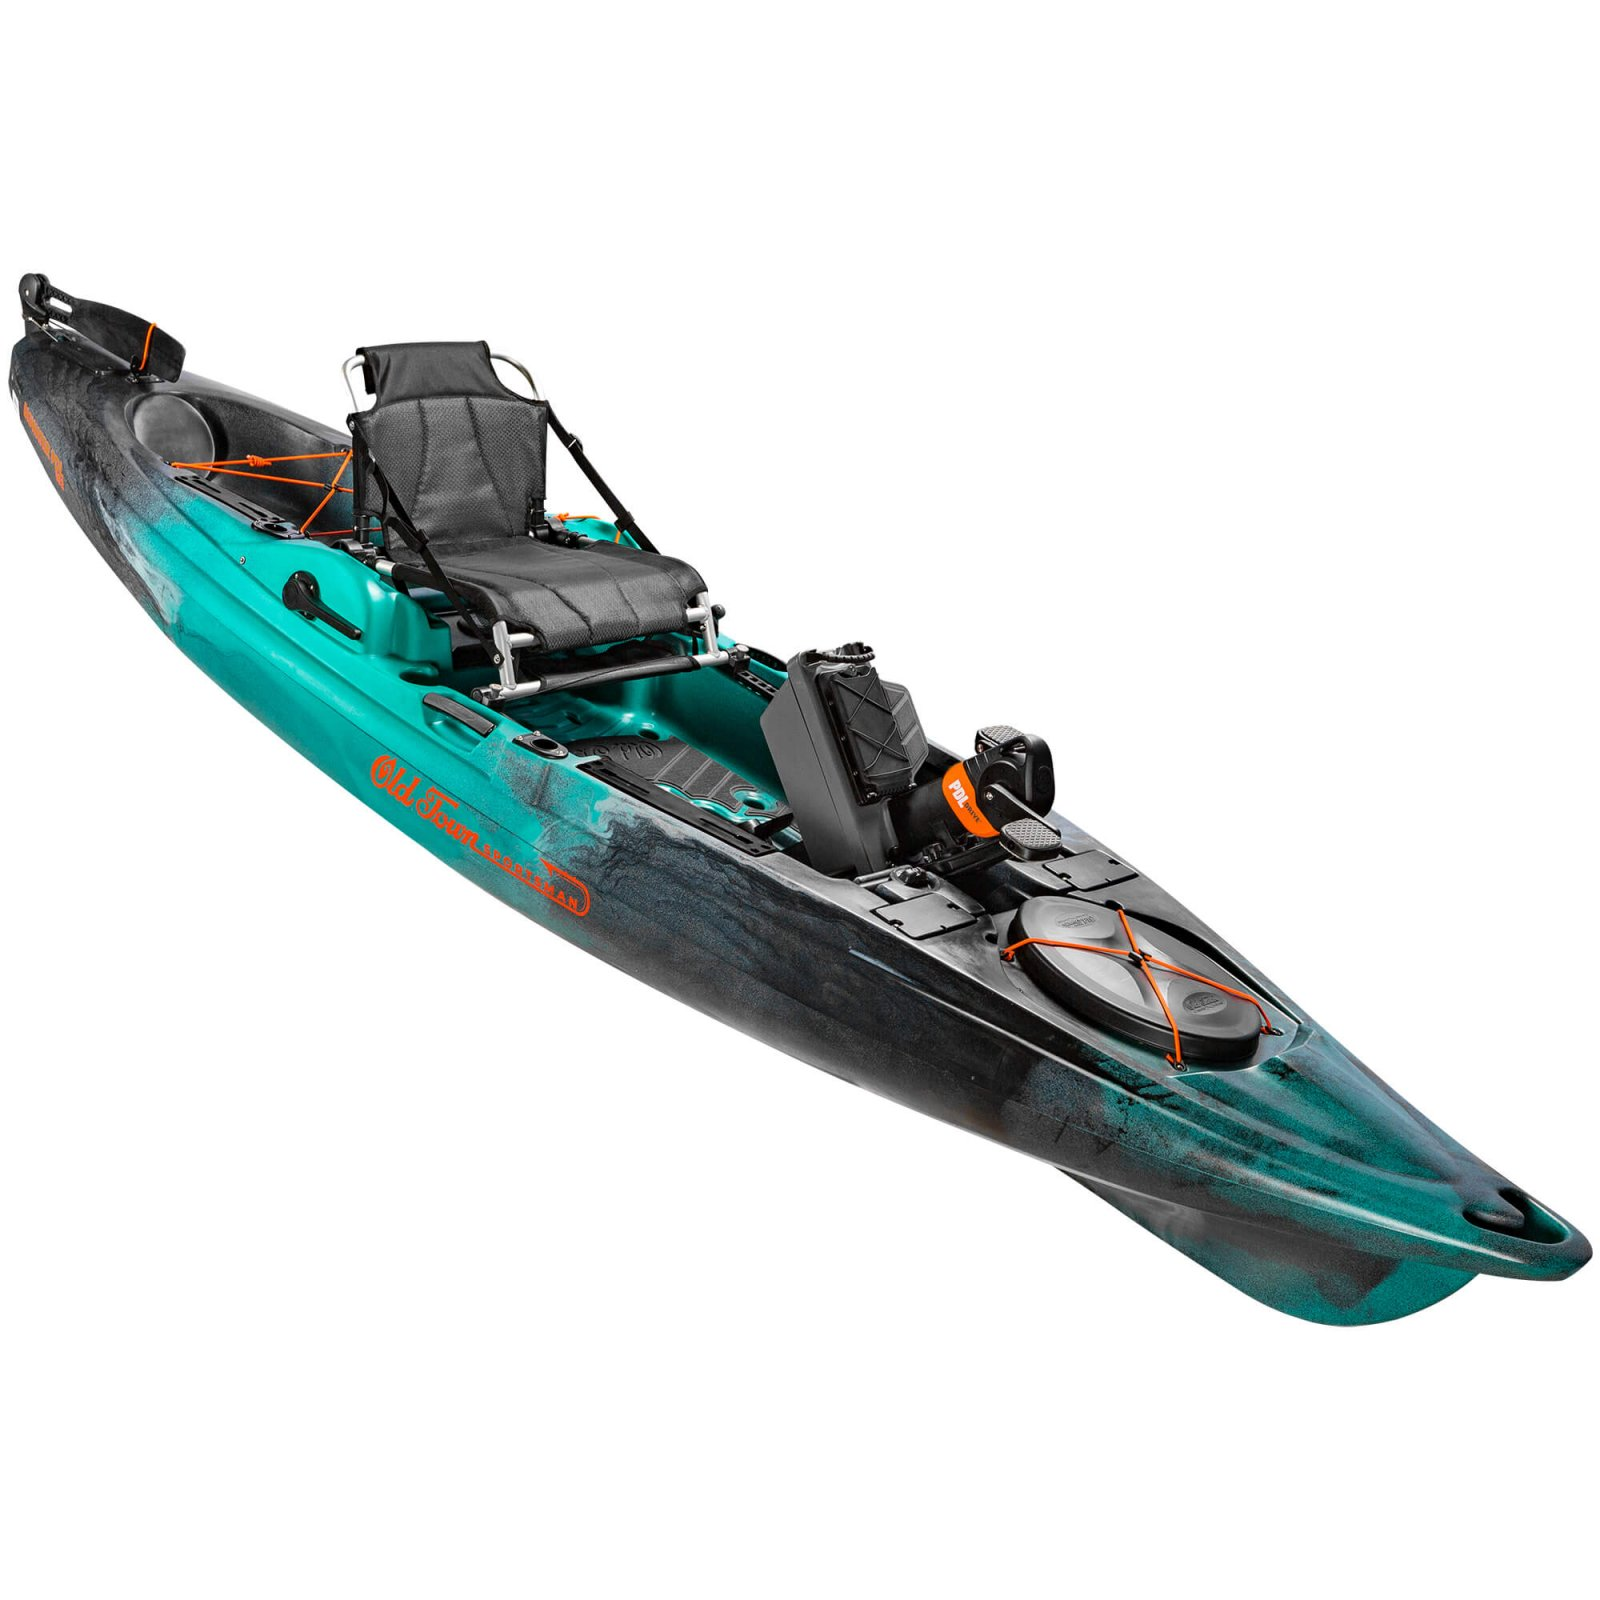 Sportsman Big Water PDL - Call to reserve yours today!